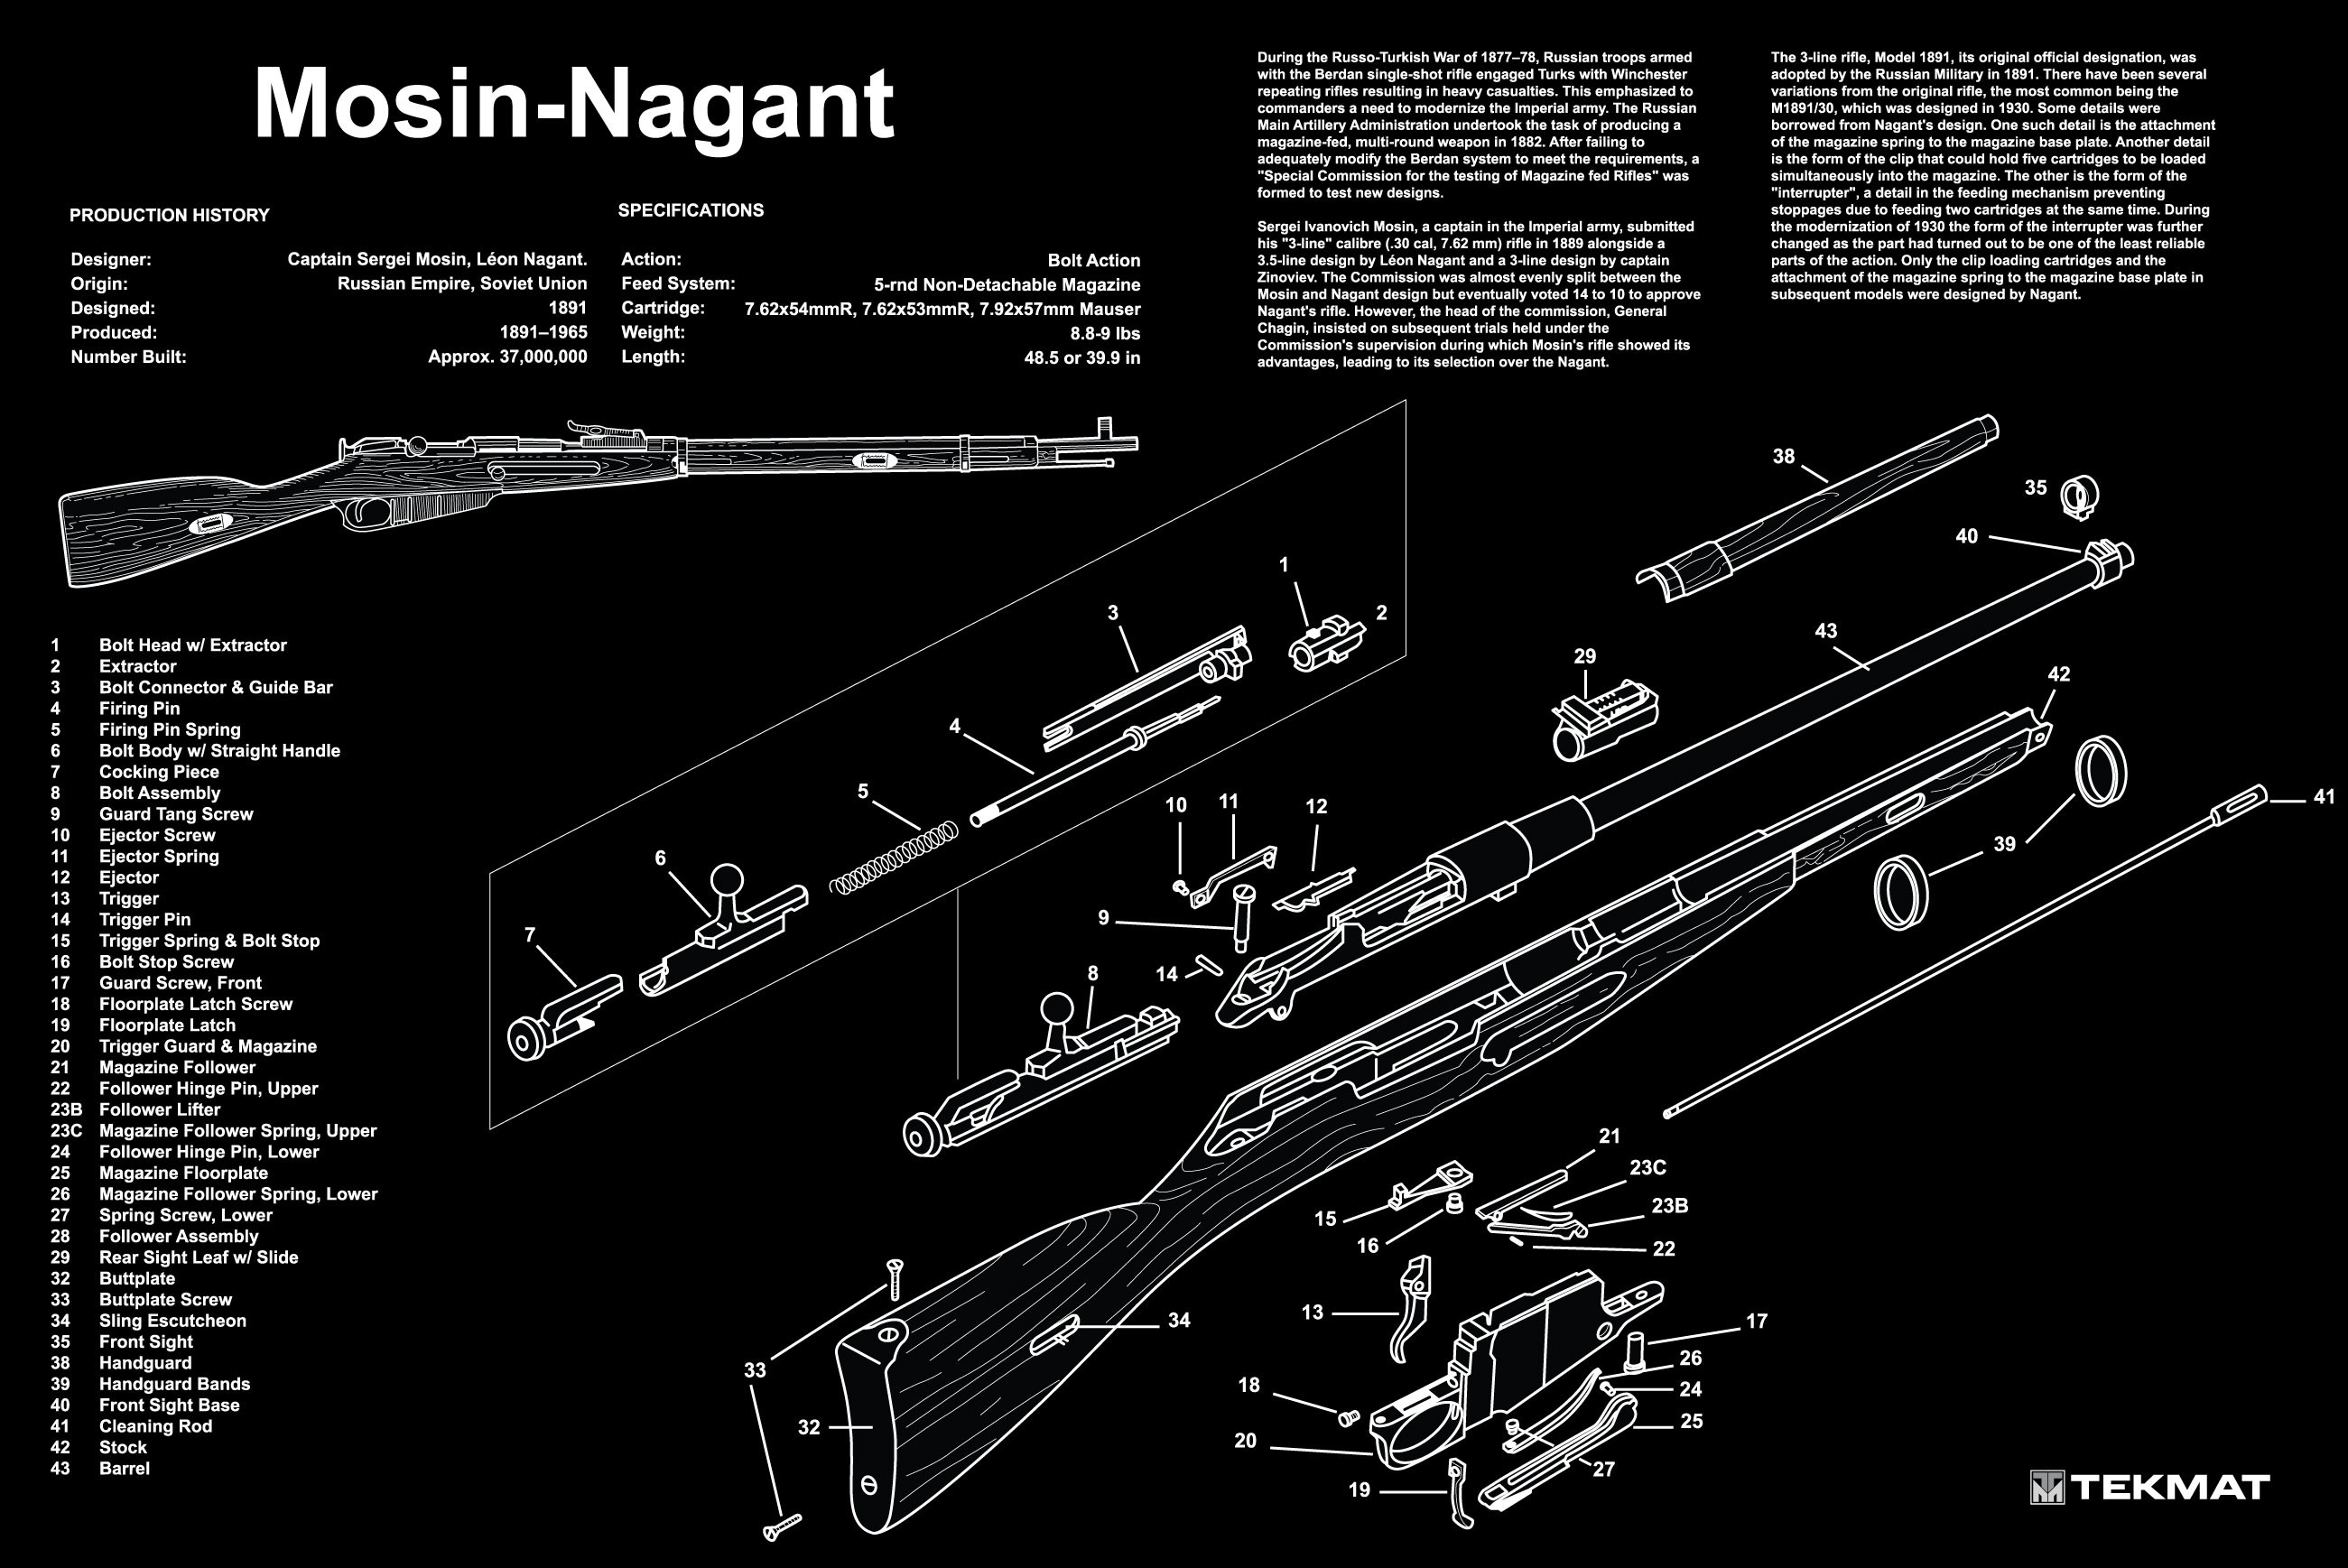 Ultimate Arms Gear Gunsmith Armorers Poster 24 X 36 Cleaning Mosin Nagant Gun Schematic Work Tool Bench The Military Weapon Rifle Diagram For Assembly And